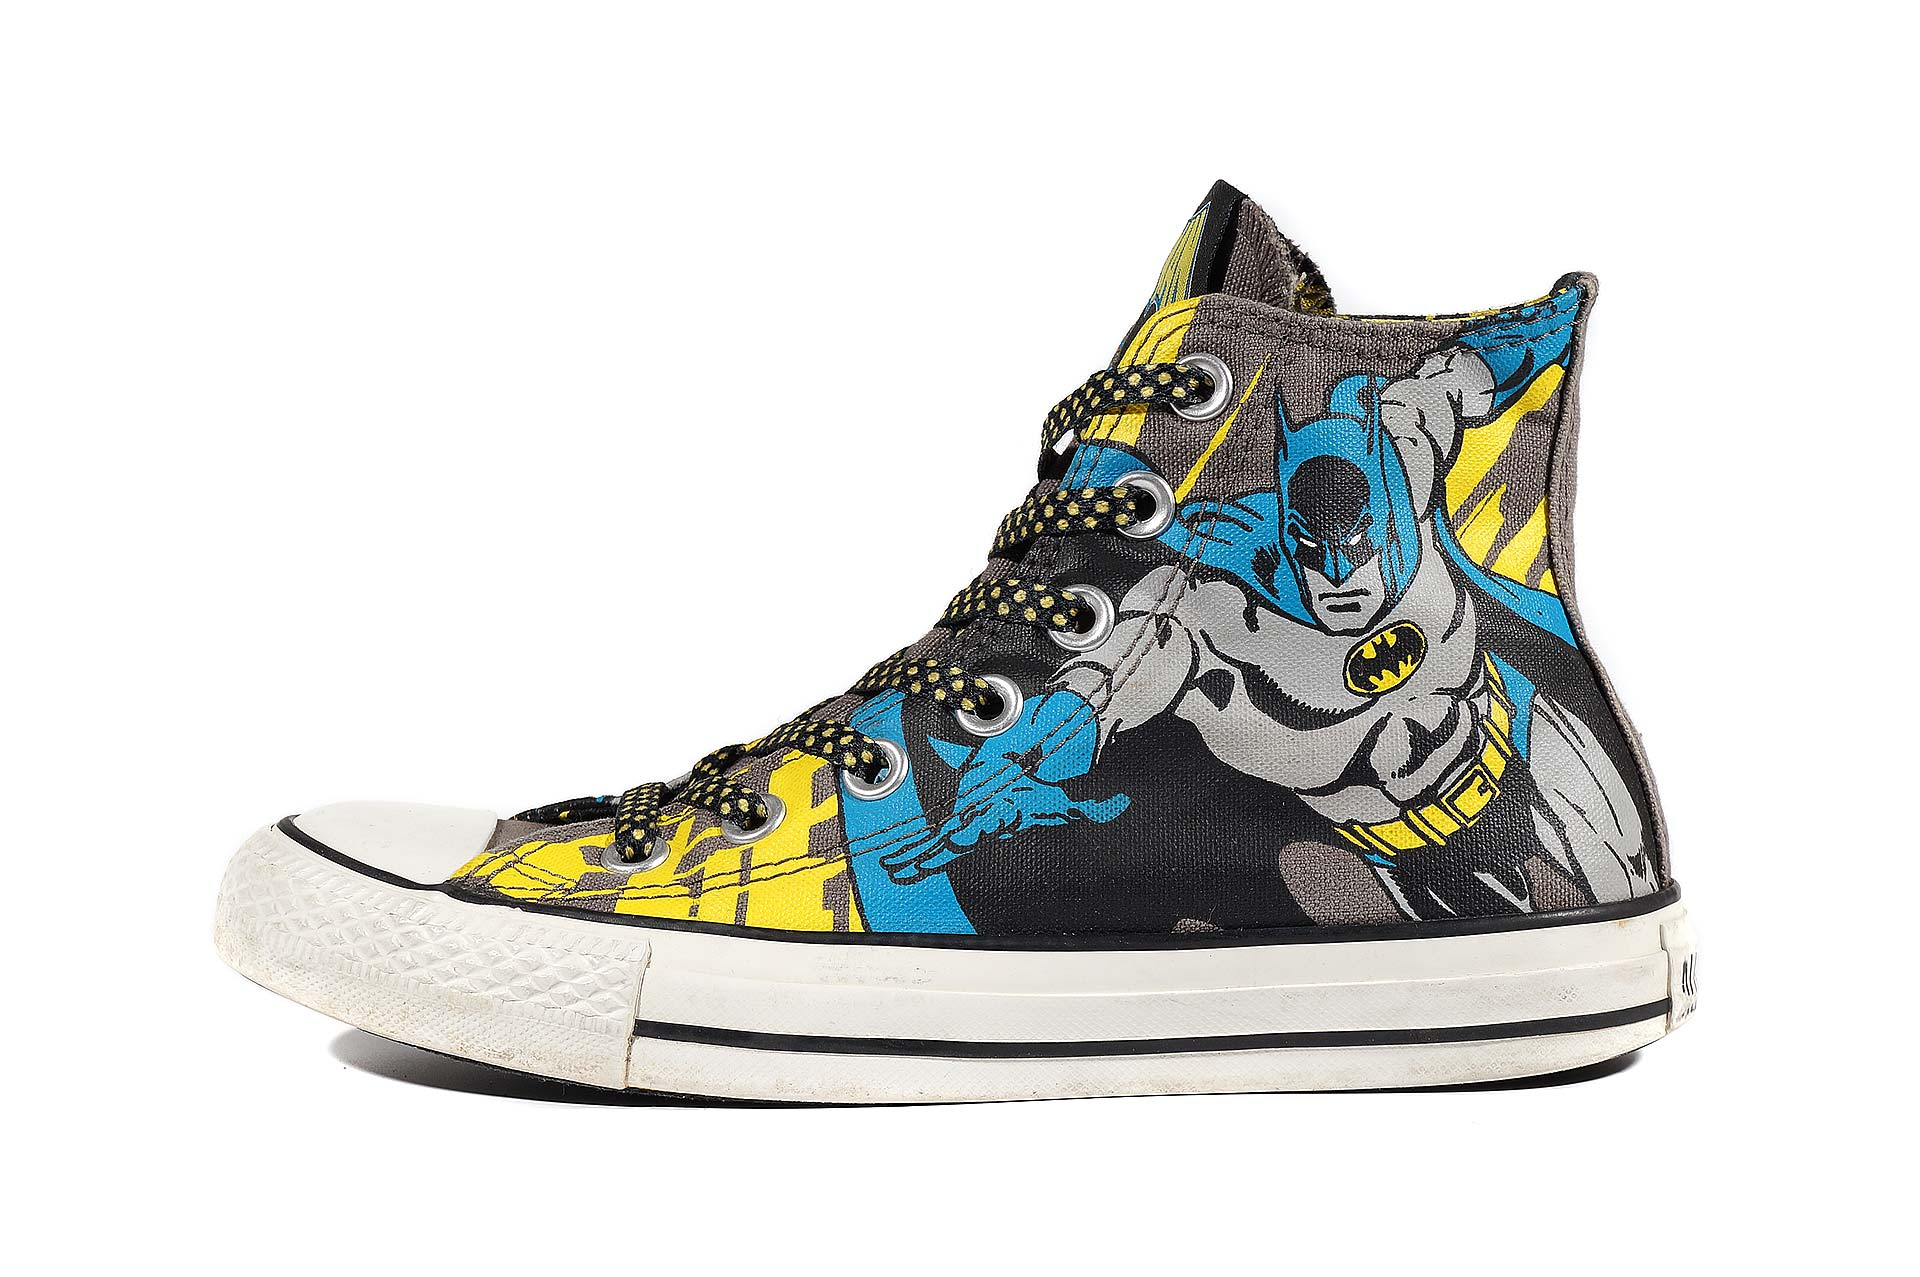 6c694d761645 Converse Chuck Taylor All Star DC Comics Batman 127215 (00015-U) sneakers  used buy online shop vintageshoes.ru